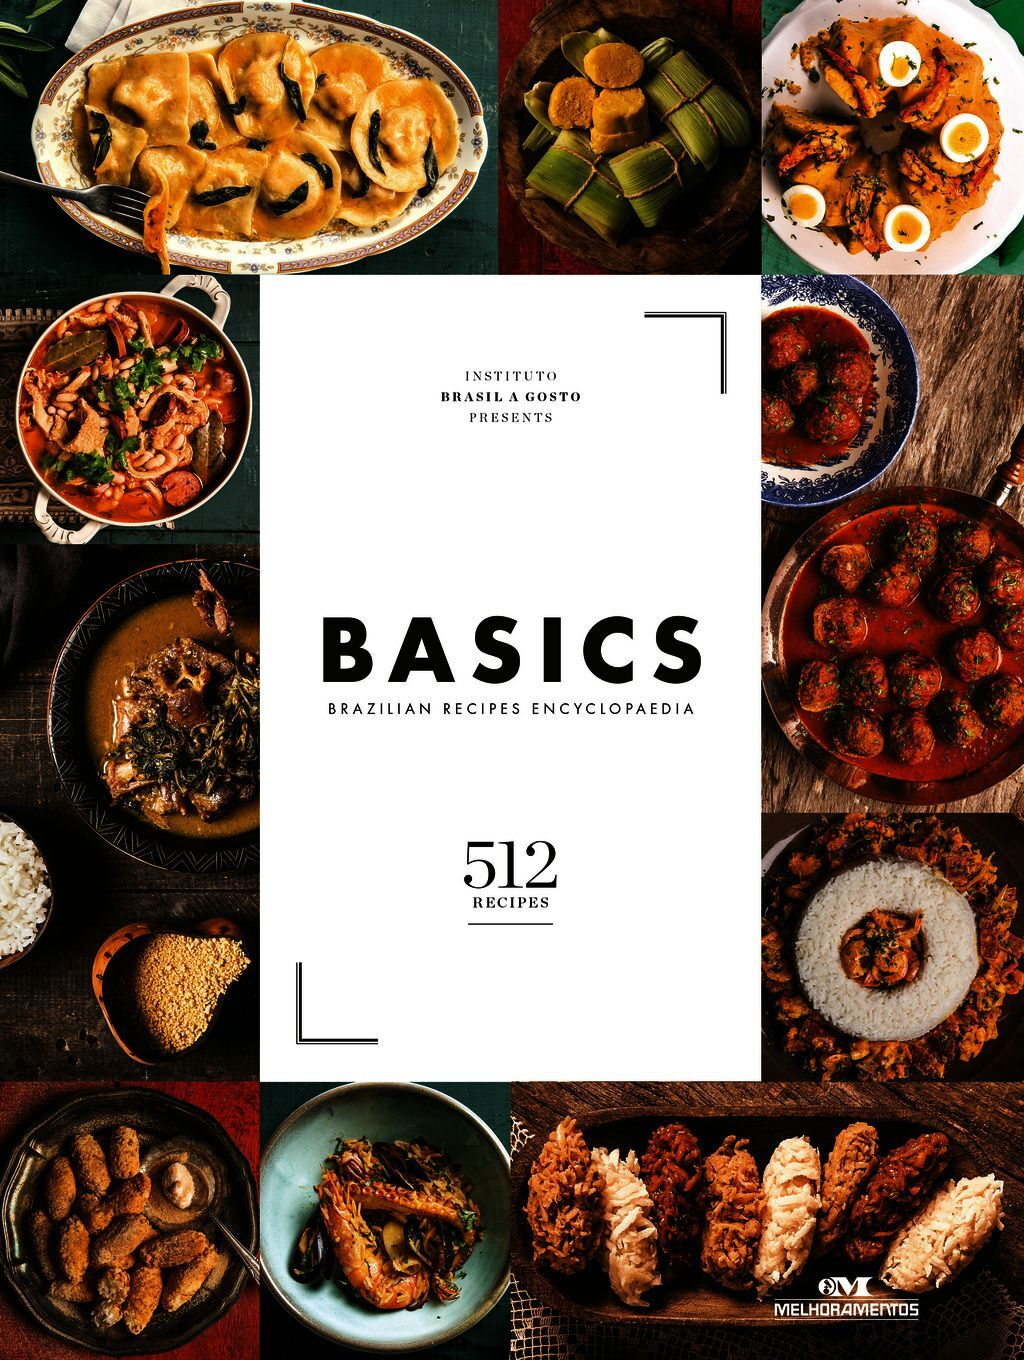 Basics – Brazilian Recipes Encyclopaedia